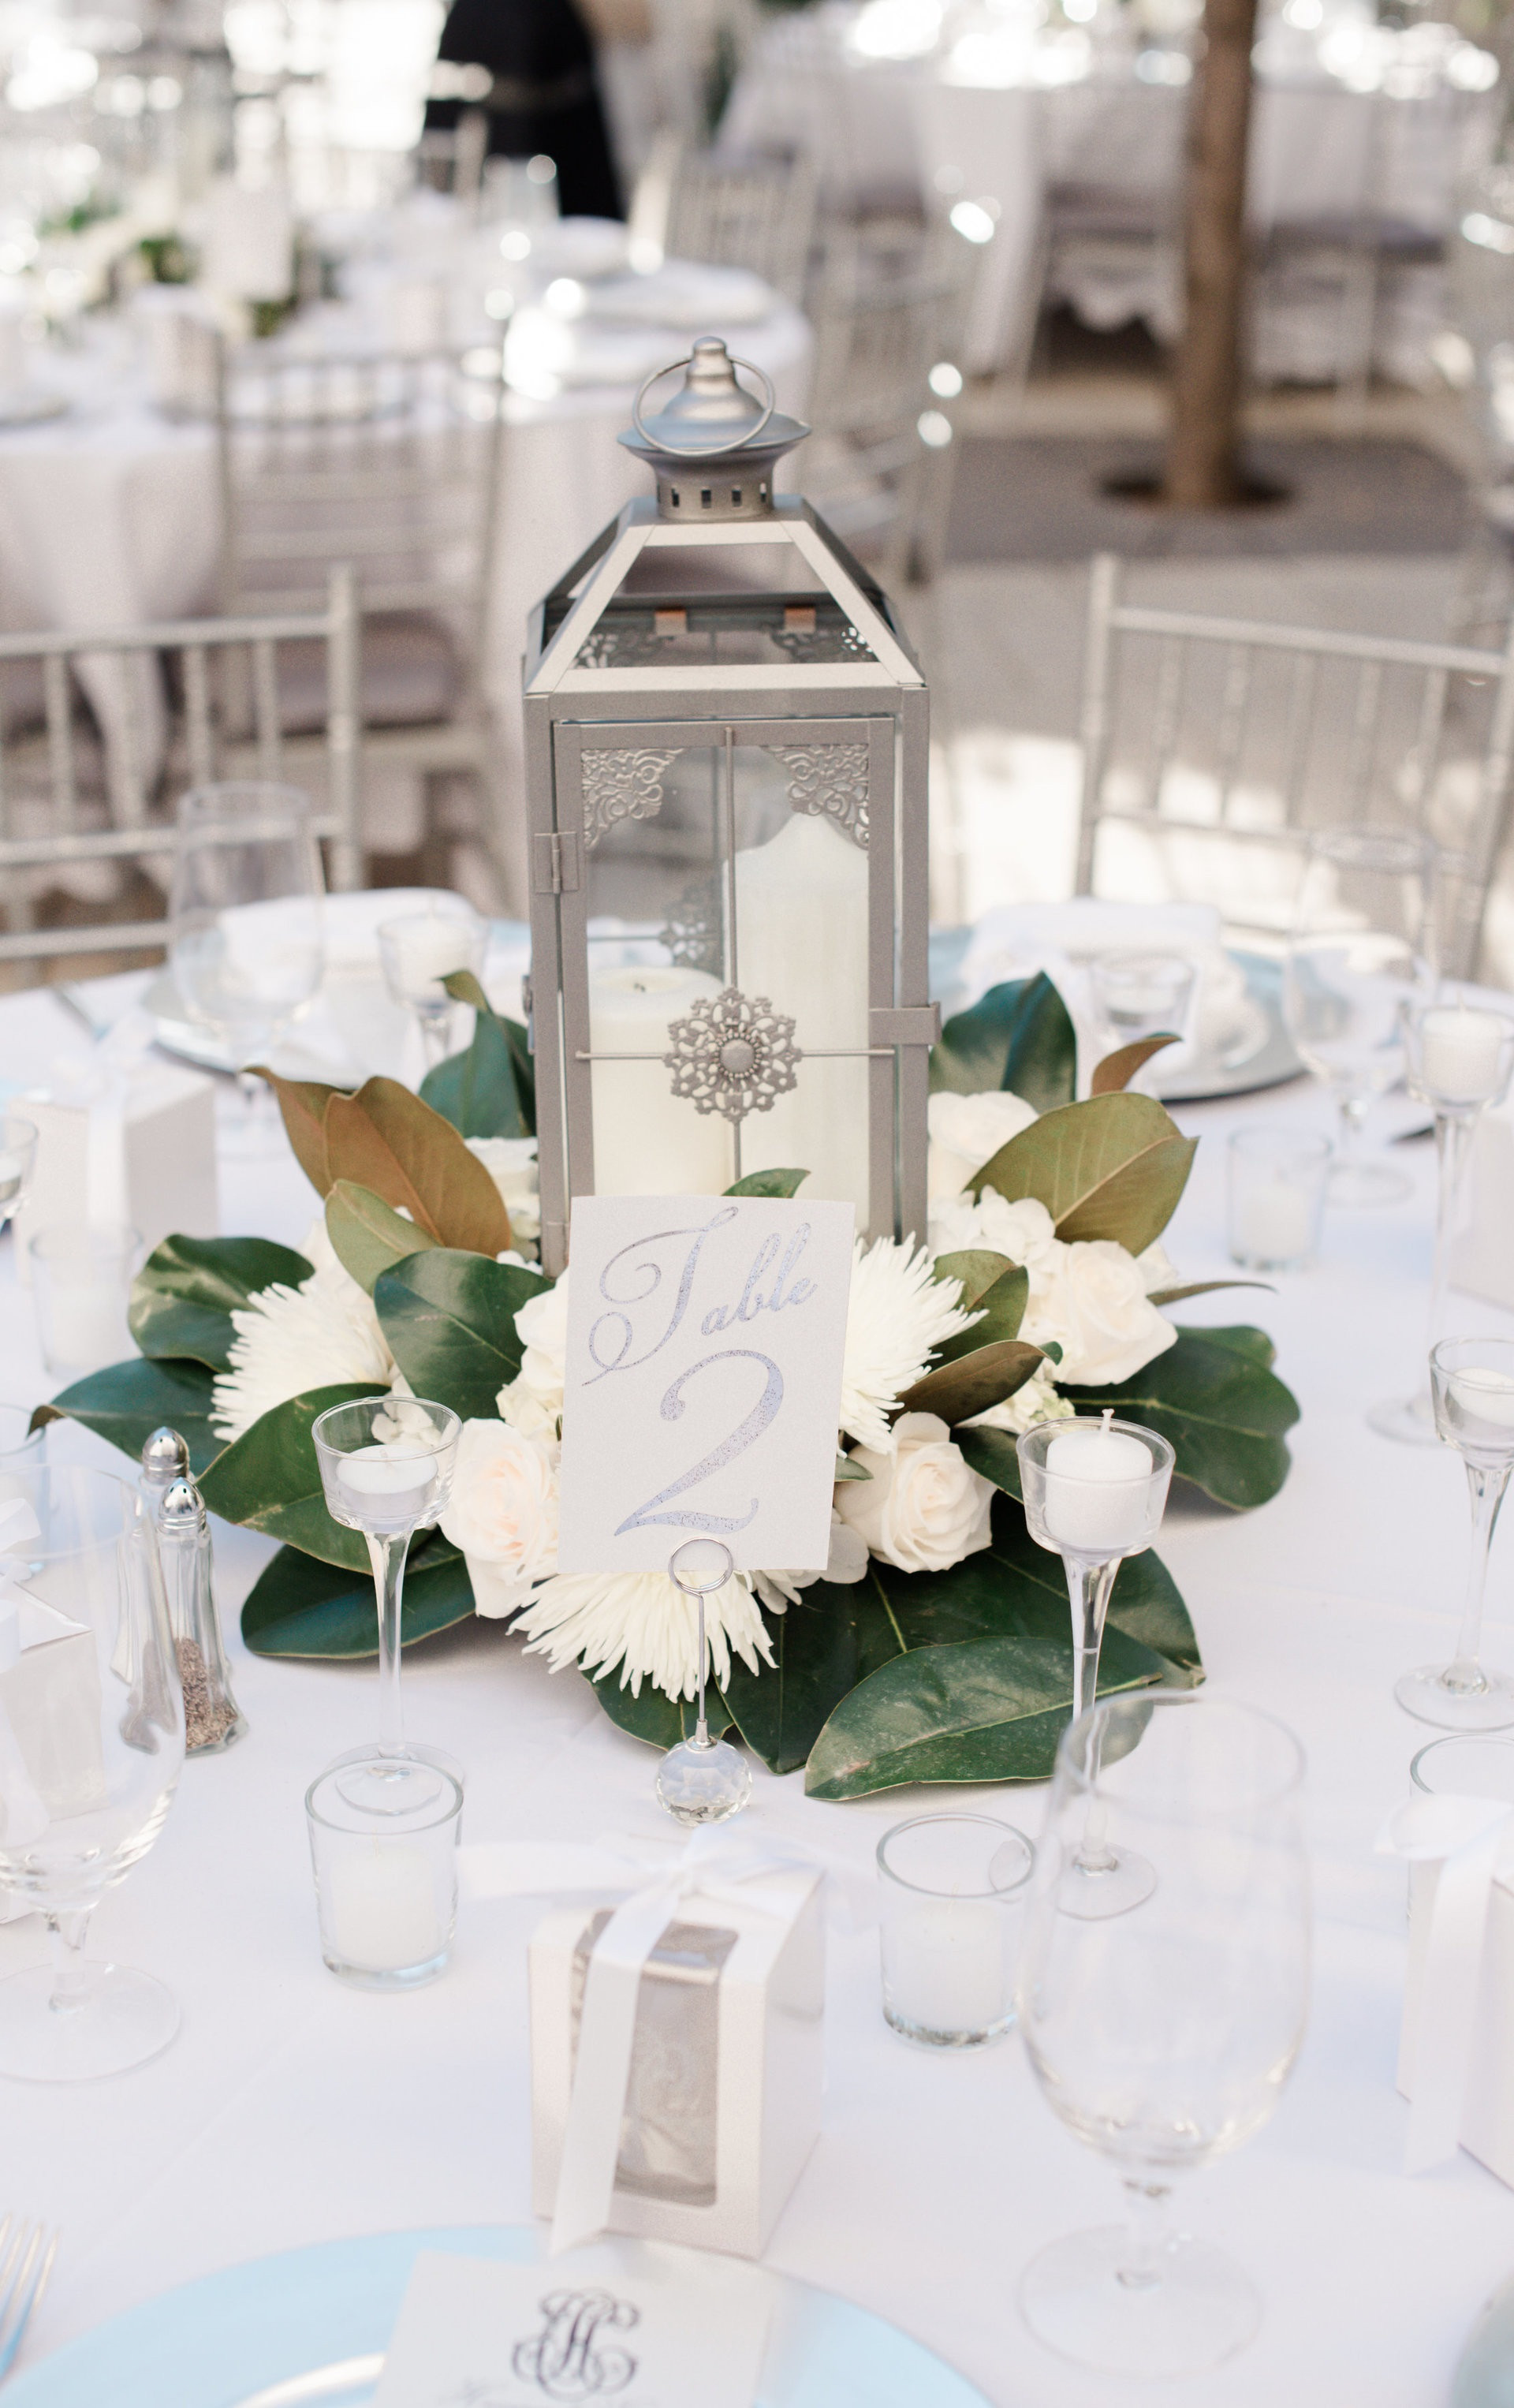 vases table centerpieces of 40 tall table elegant tall vase centerpiece ideas vases flower water with regard to 40 tall table new 40 inspirational silver table centerpieces images of 40 tall table elegant tall